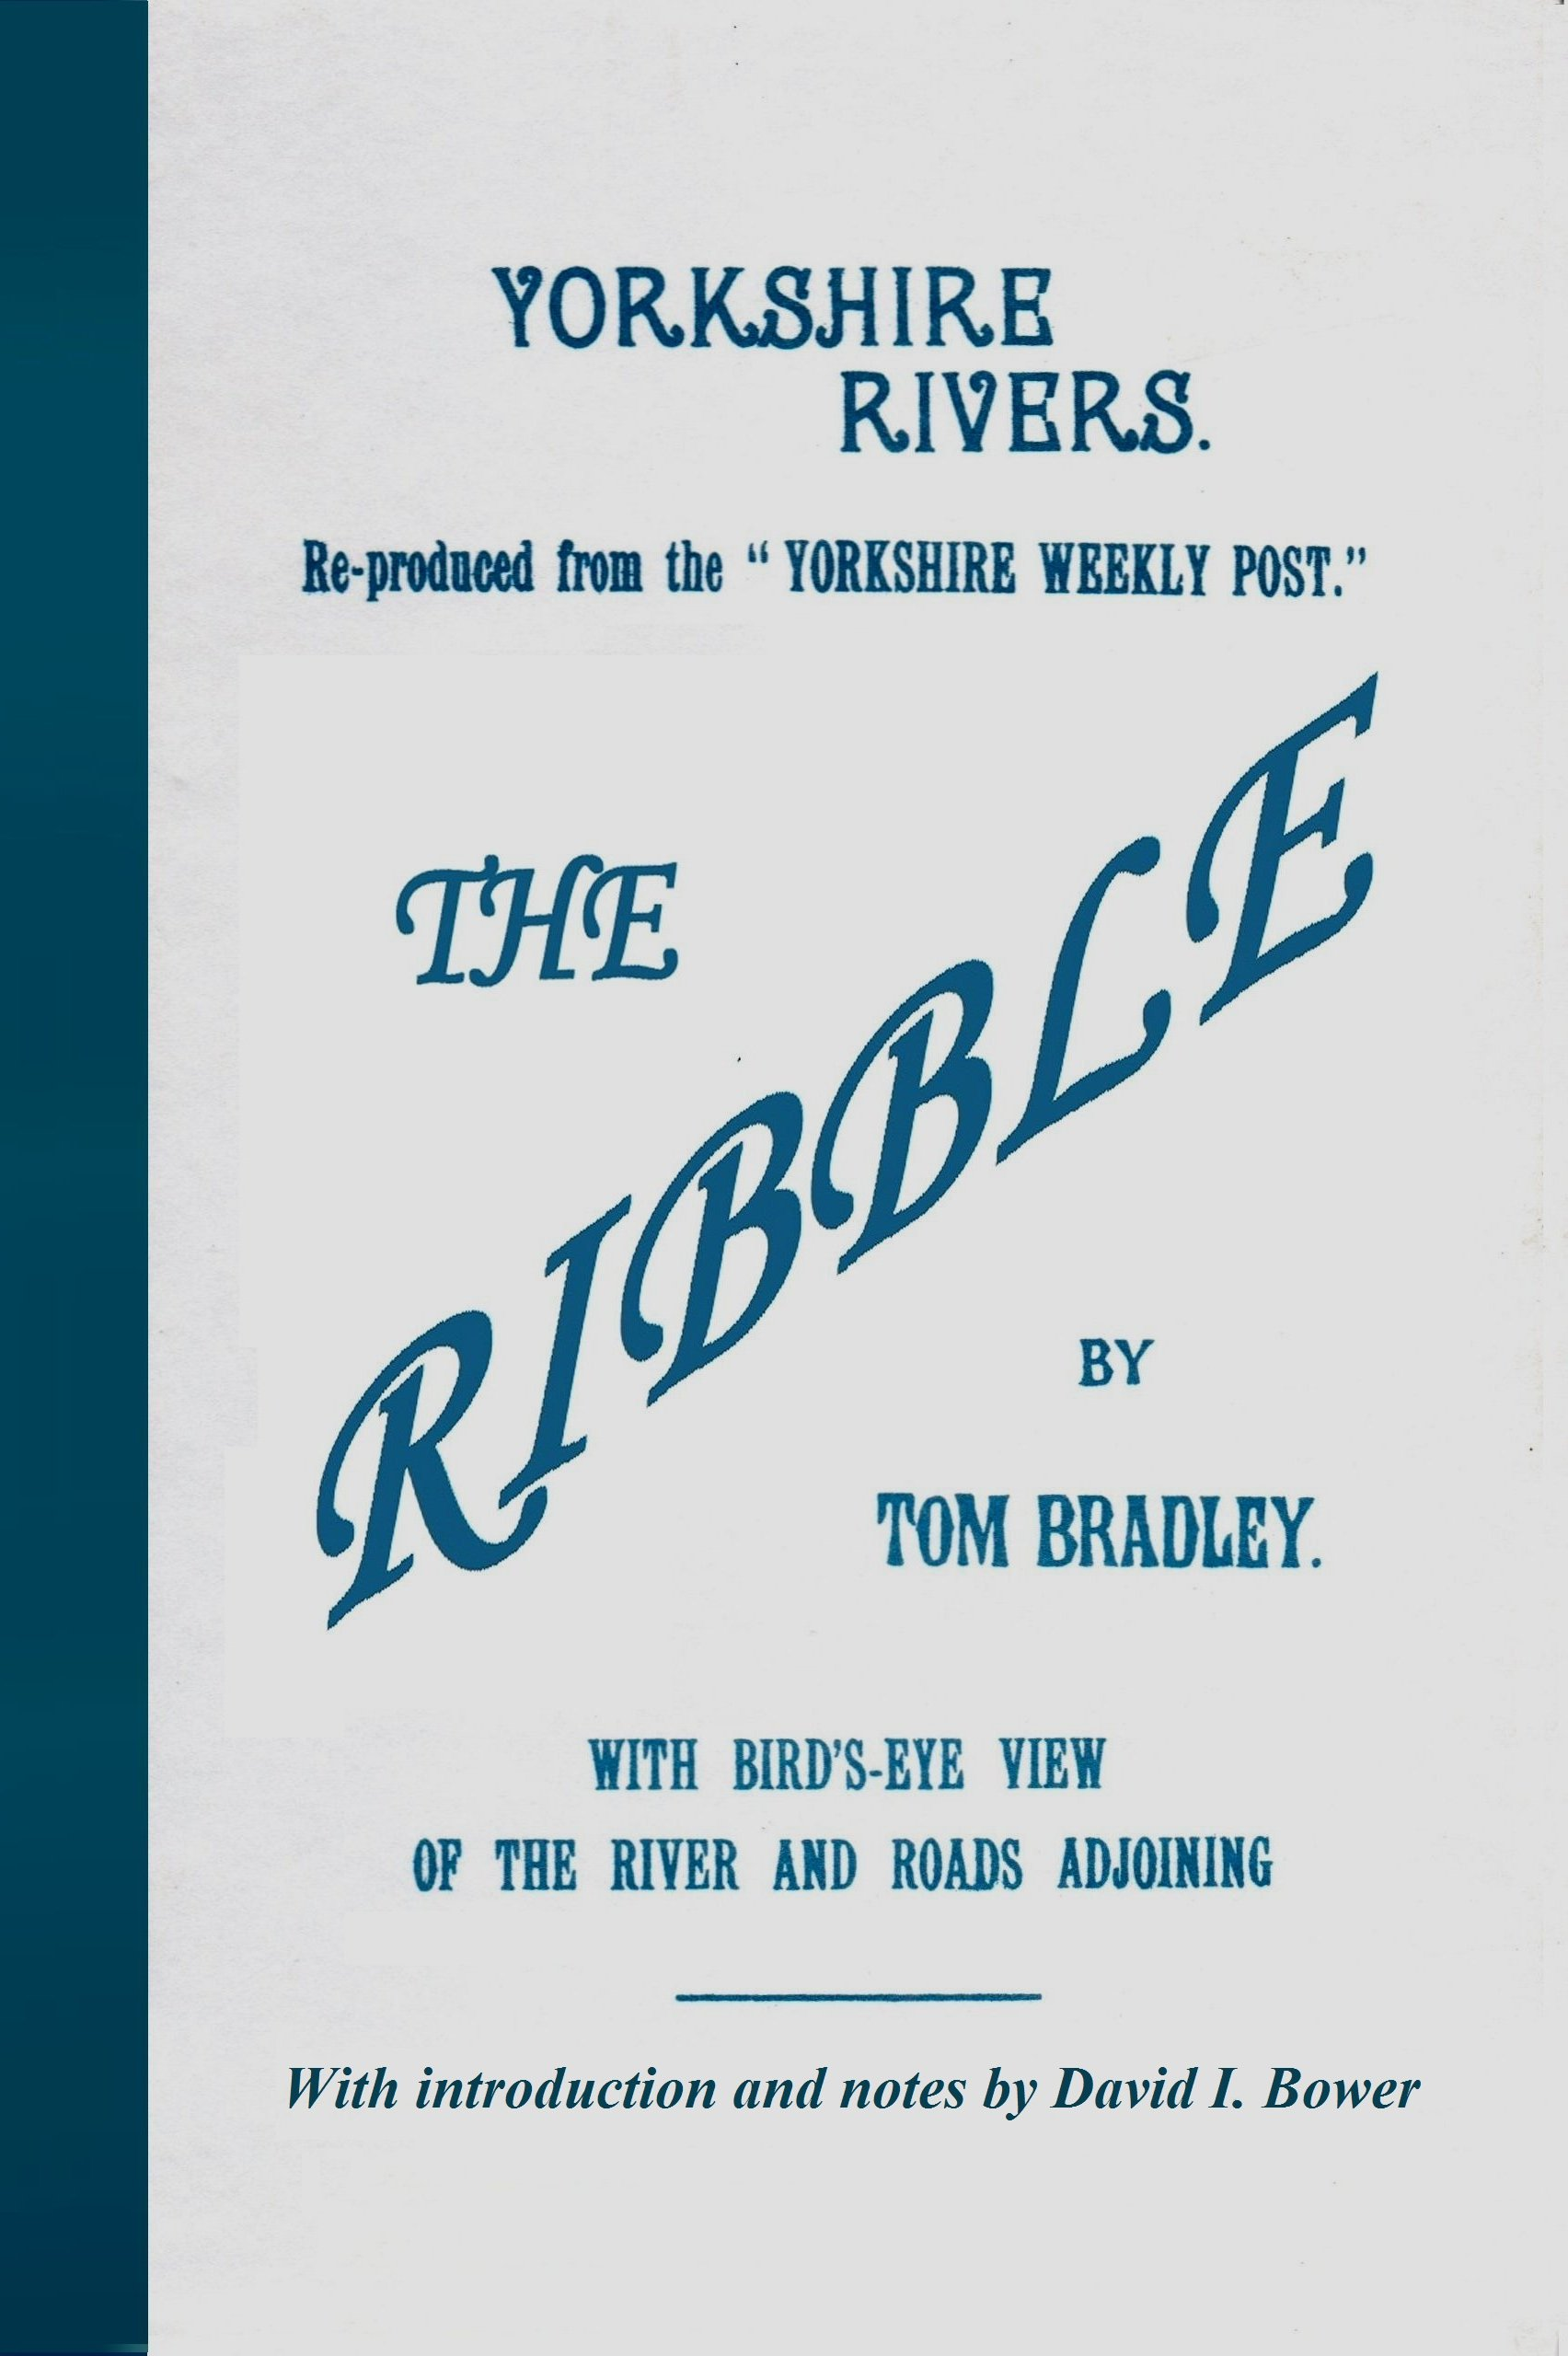 Ribble front cover